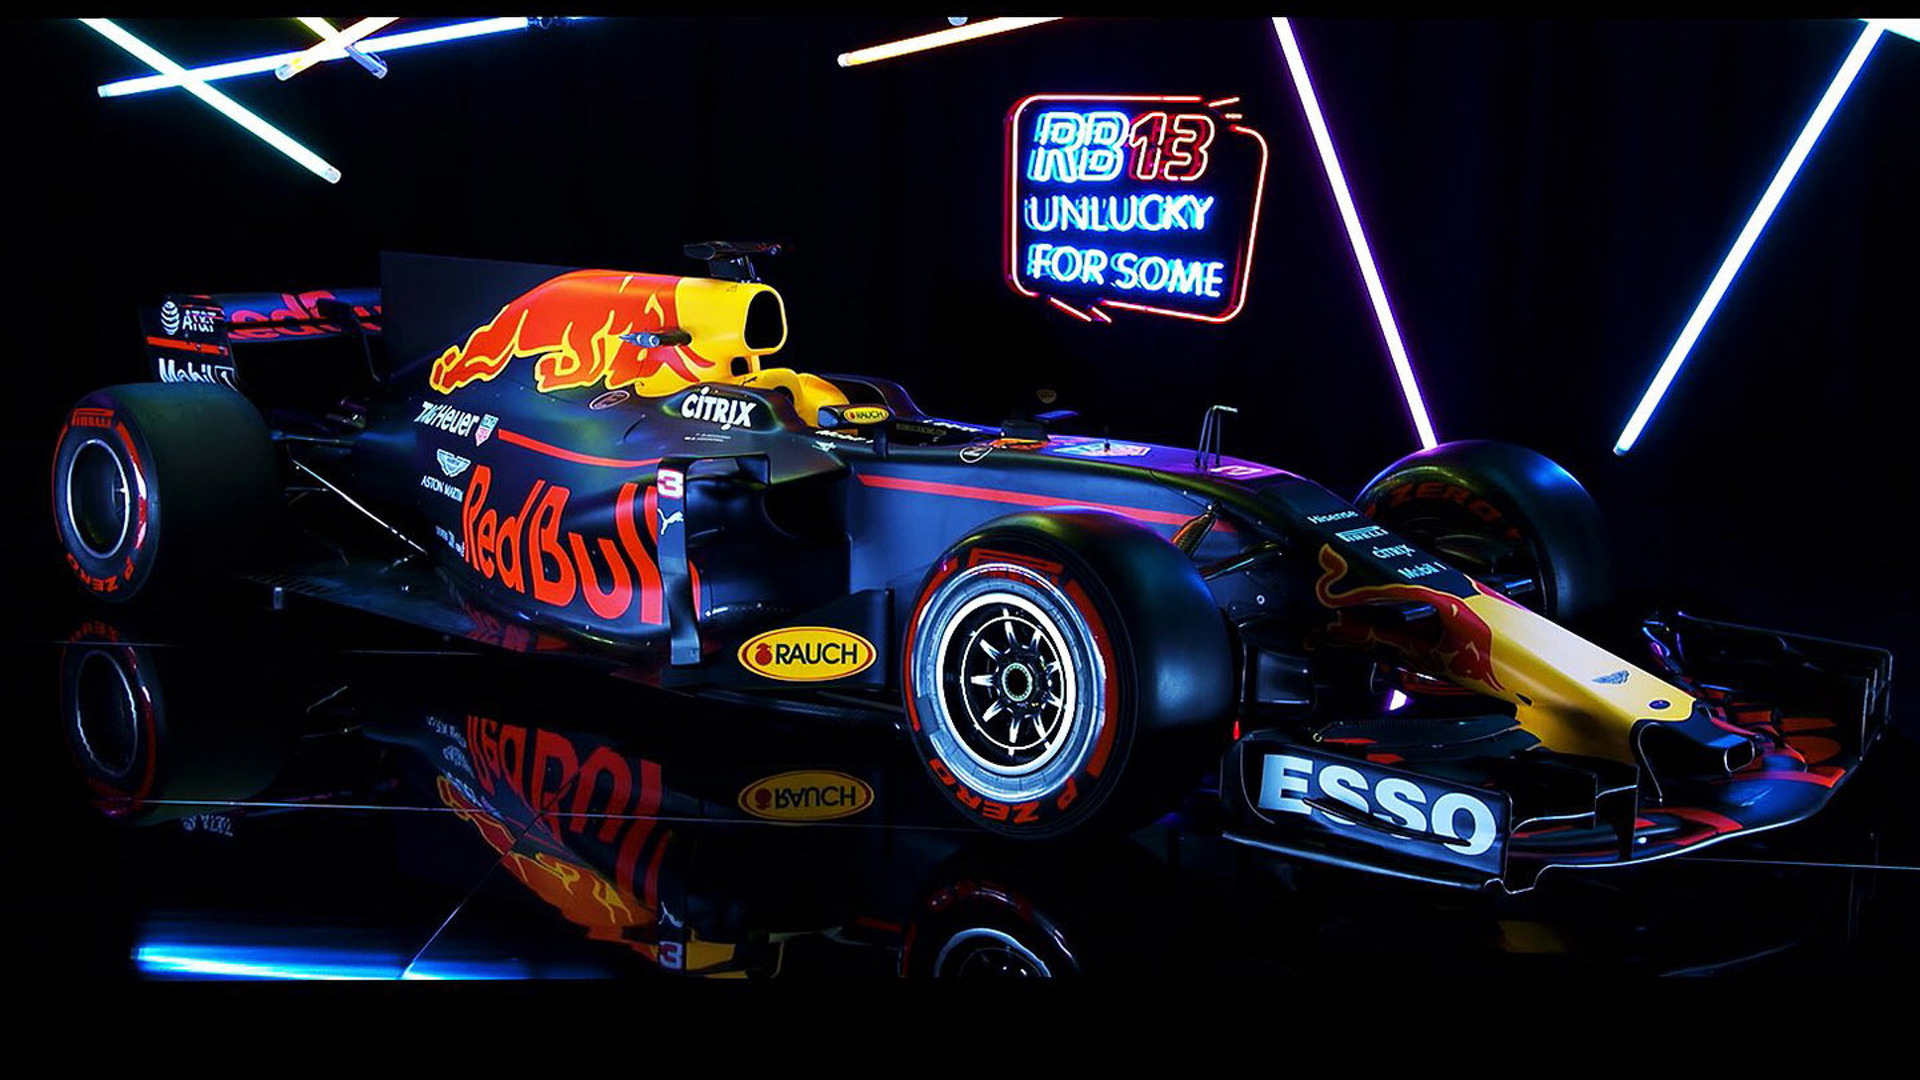 Red Bull Launches Its 2017 F1 Car The Rb13